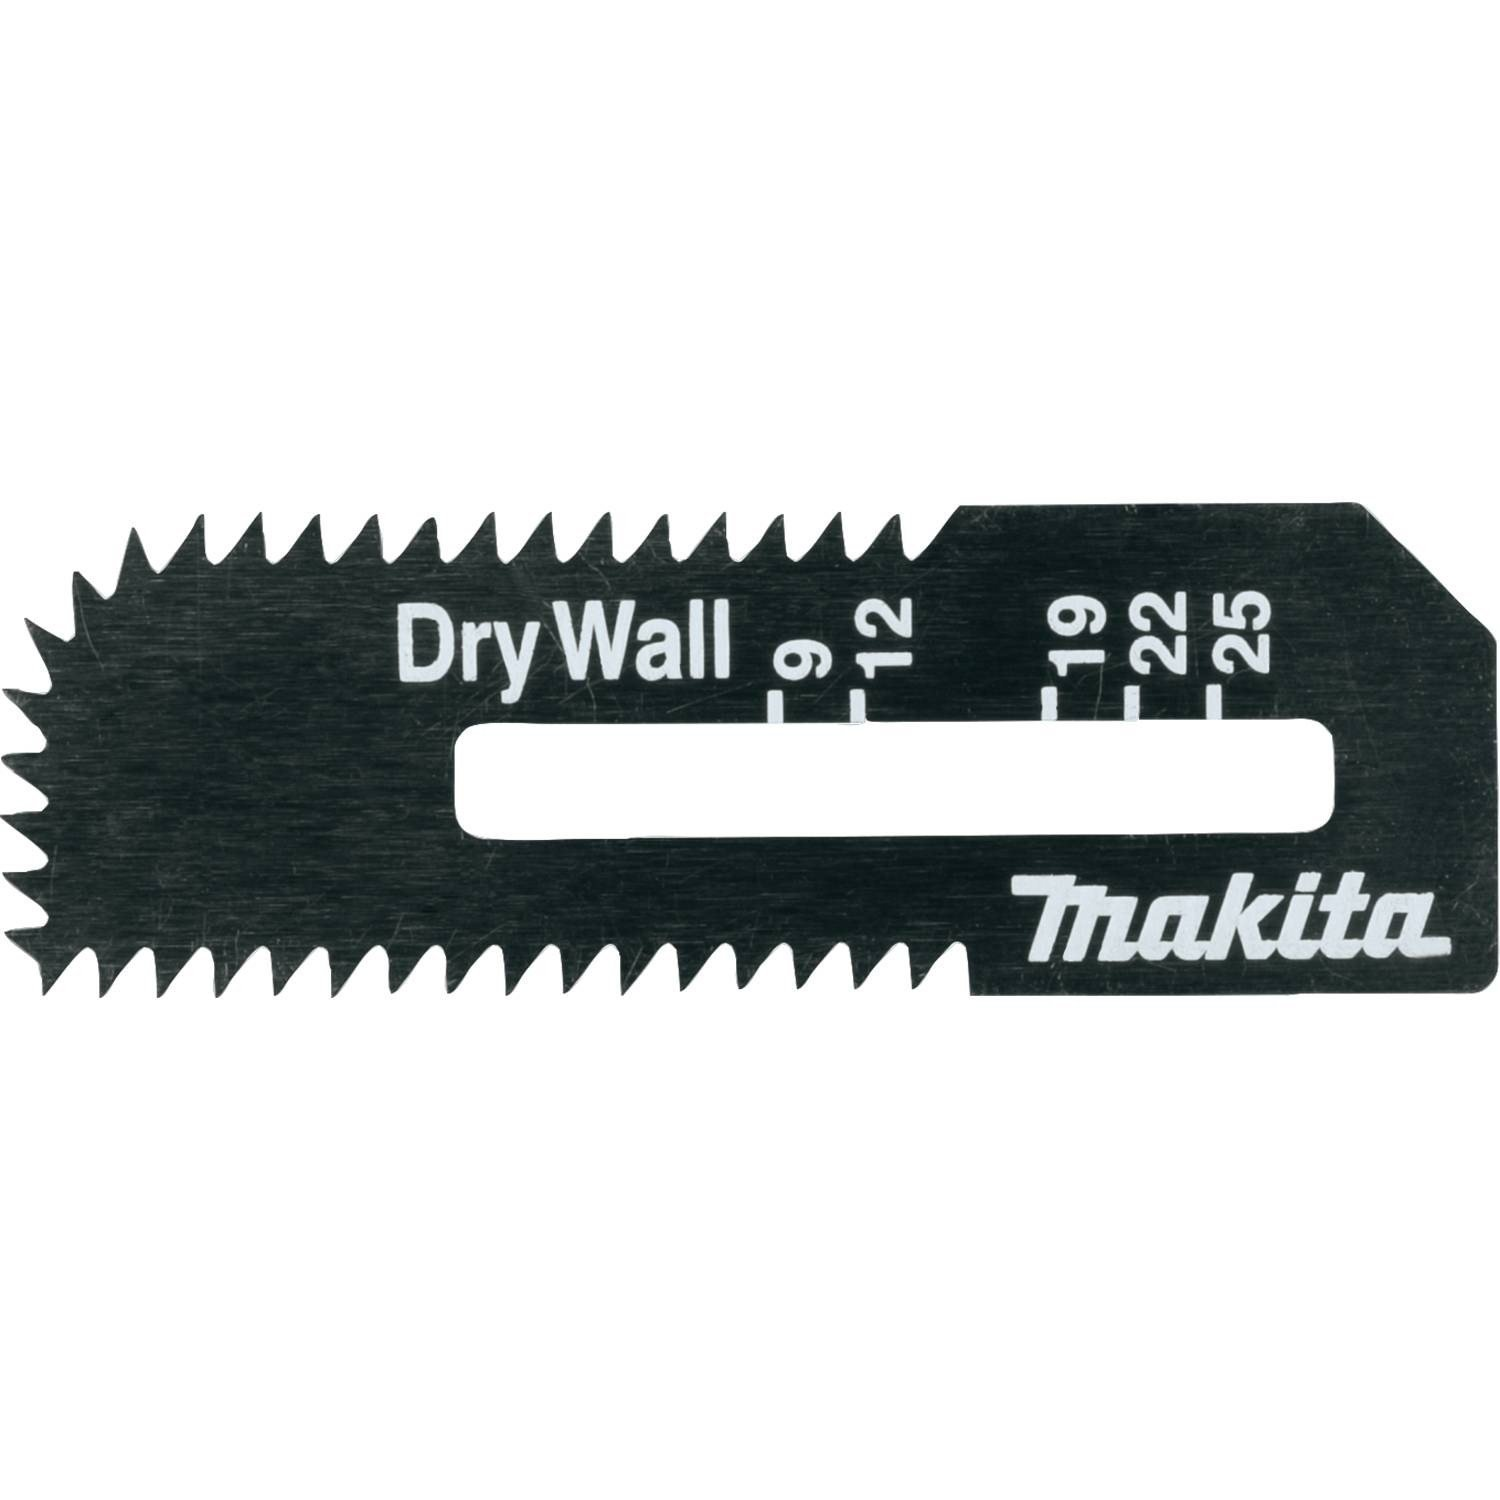 Best Tool To Cut Drywall How To Cut Drywall Effectively